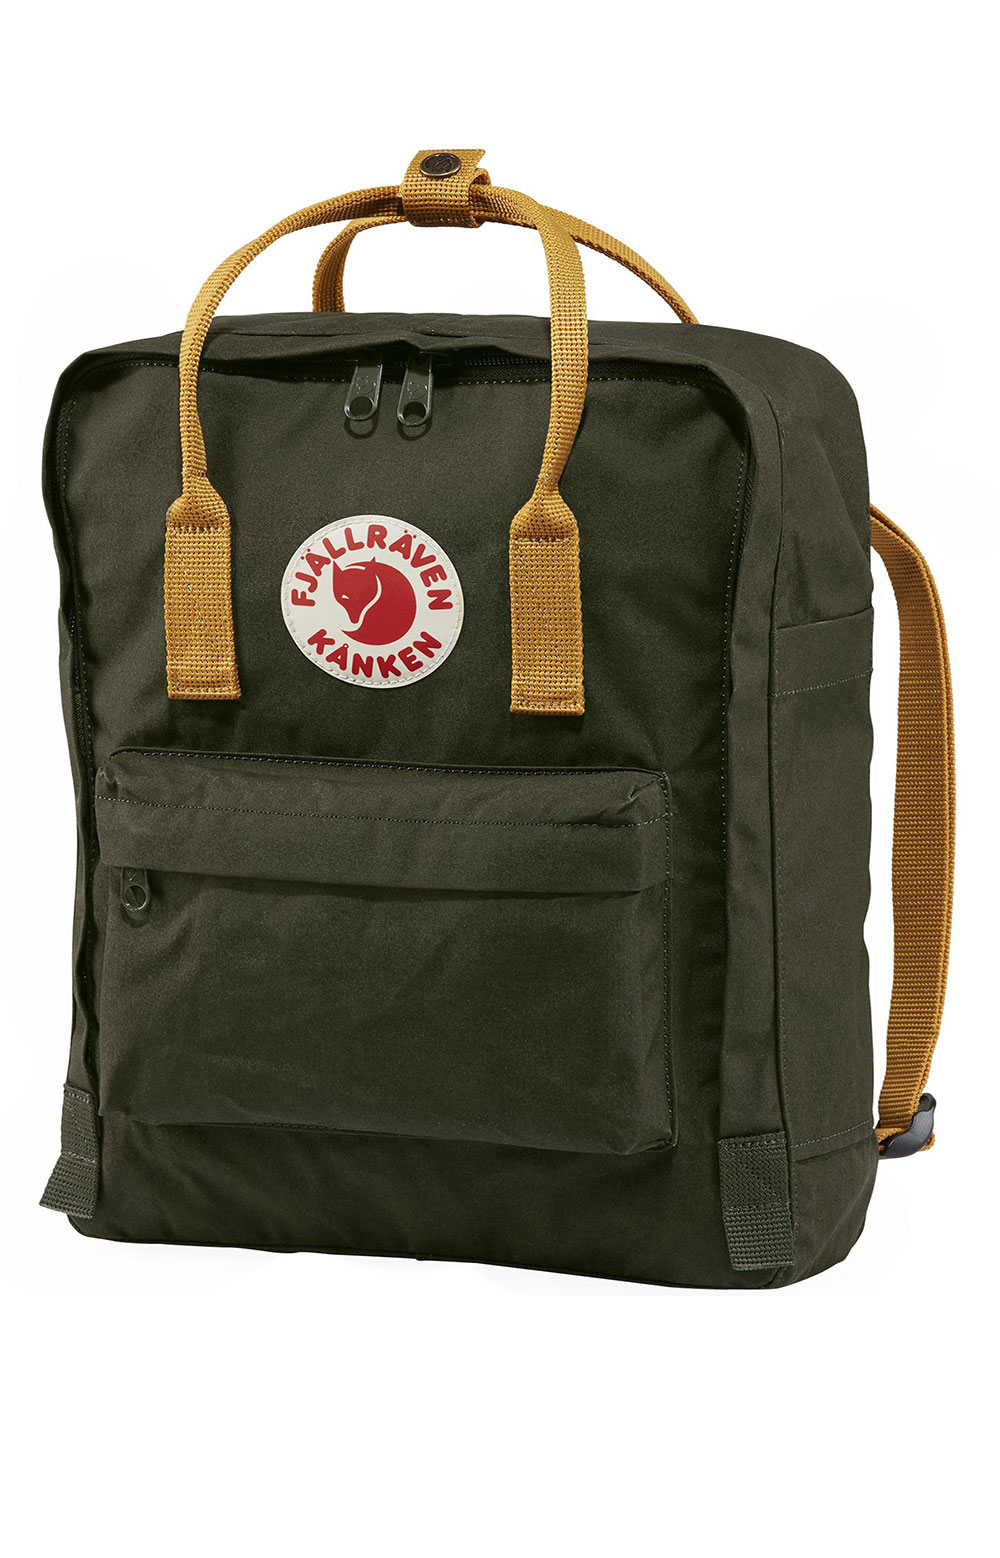 Kanken Backpack - Deep Forest/Acorn  4